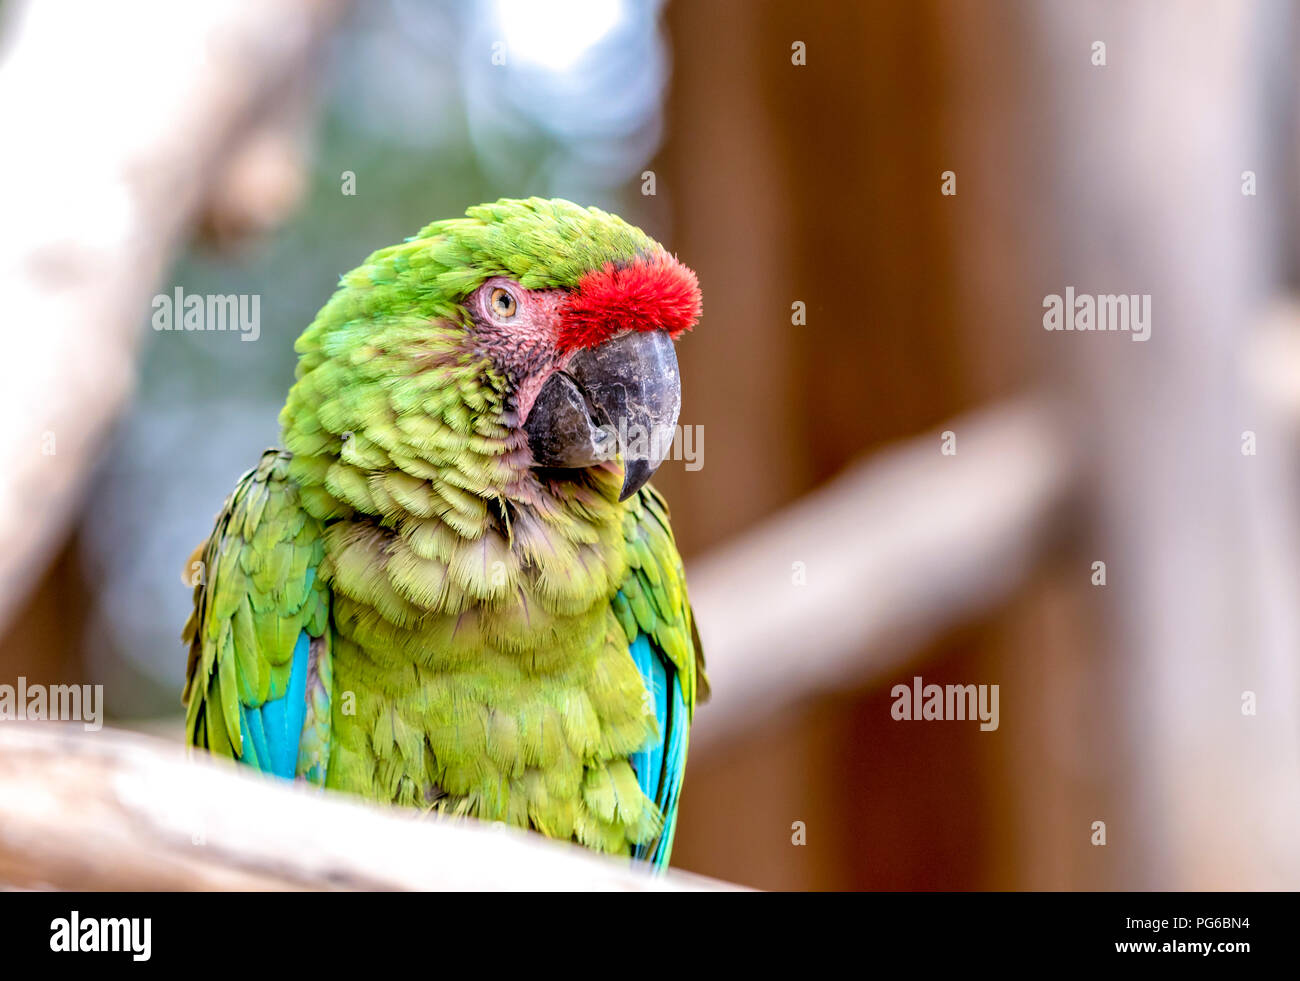 Close up shot of a Parrot - Stock Image